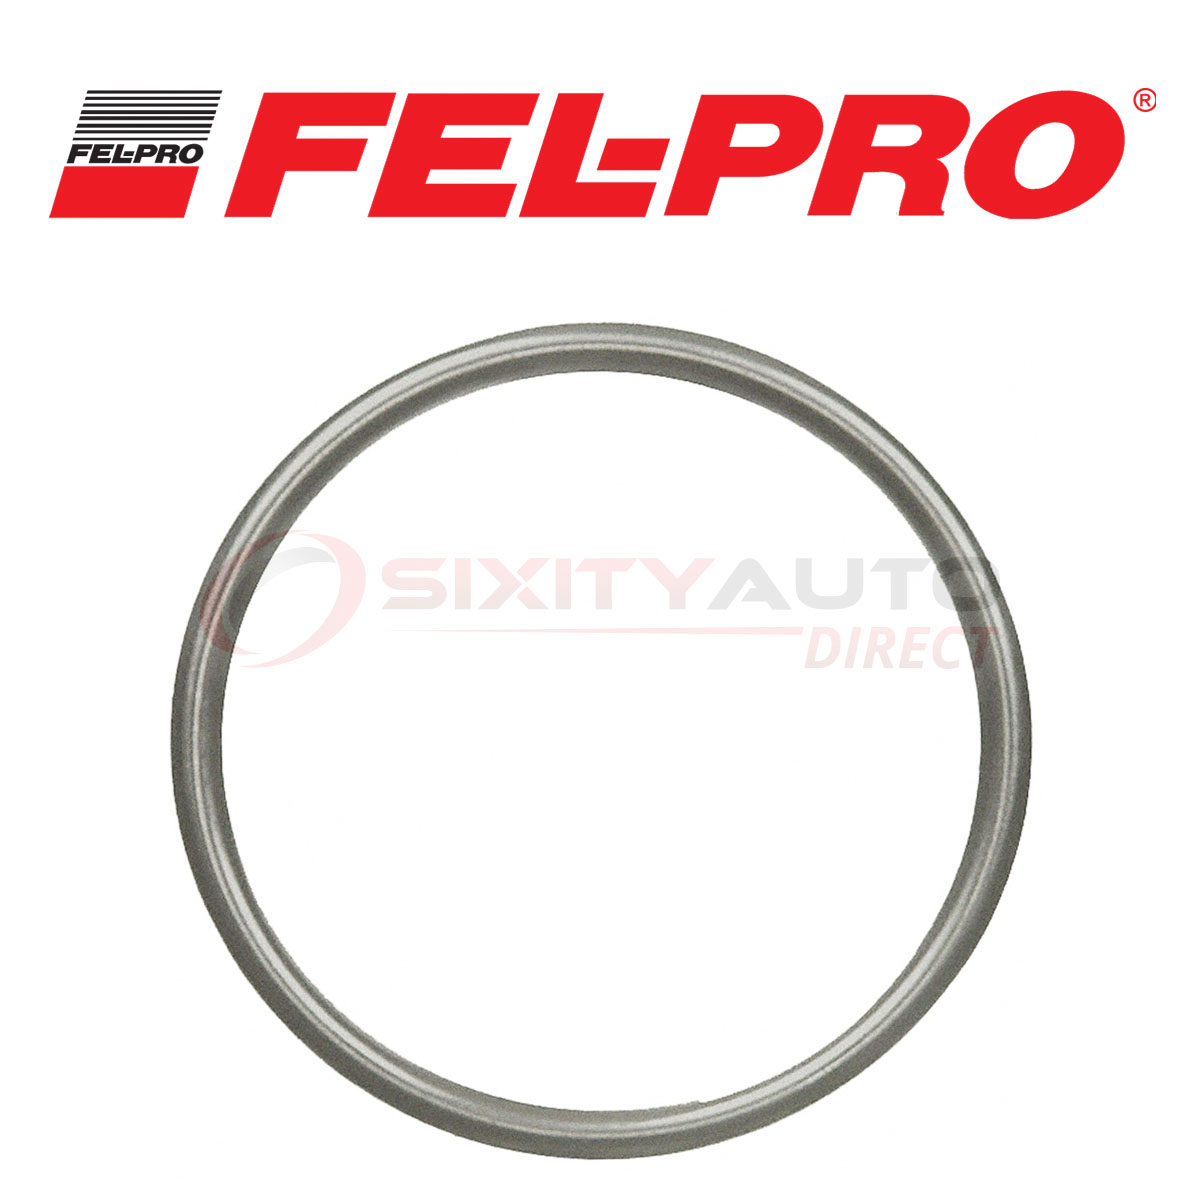 Fel Pro Exhaust Pipe Flange Gasket For 2010-2013 Acura TSX